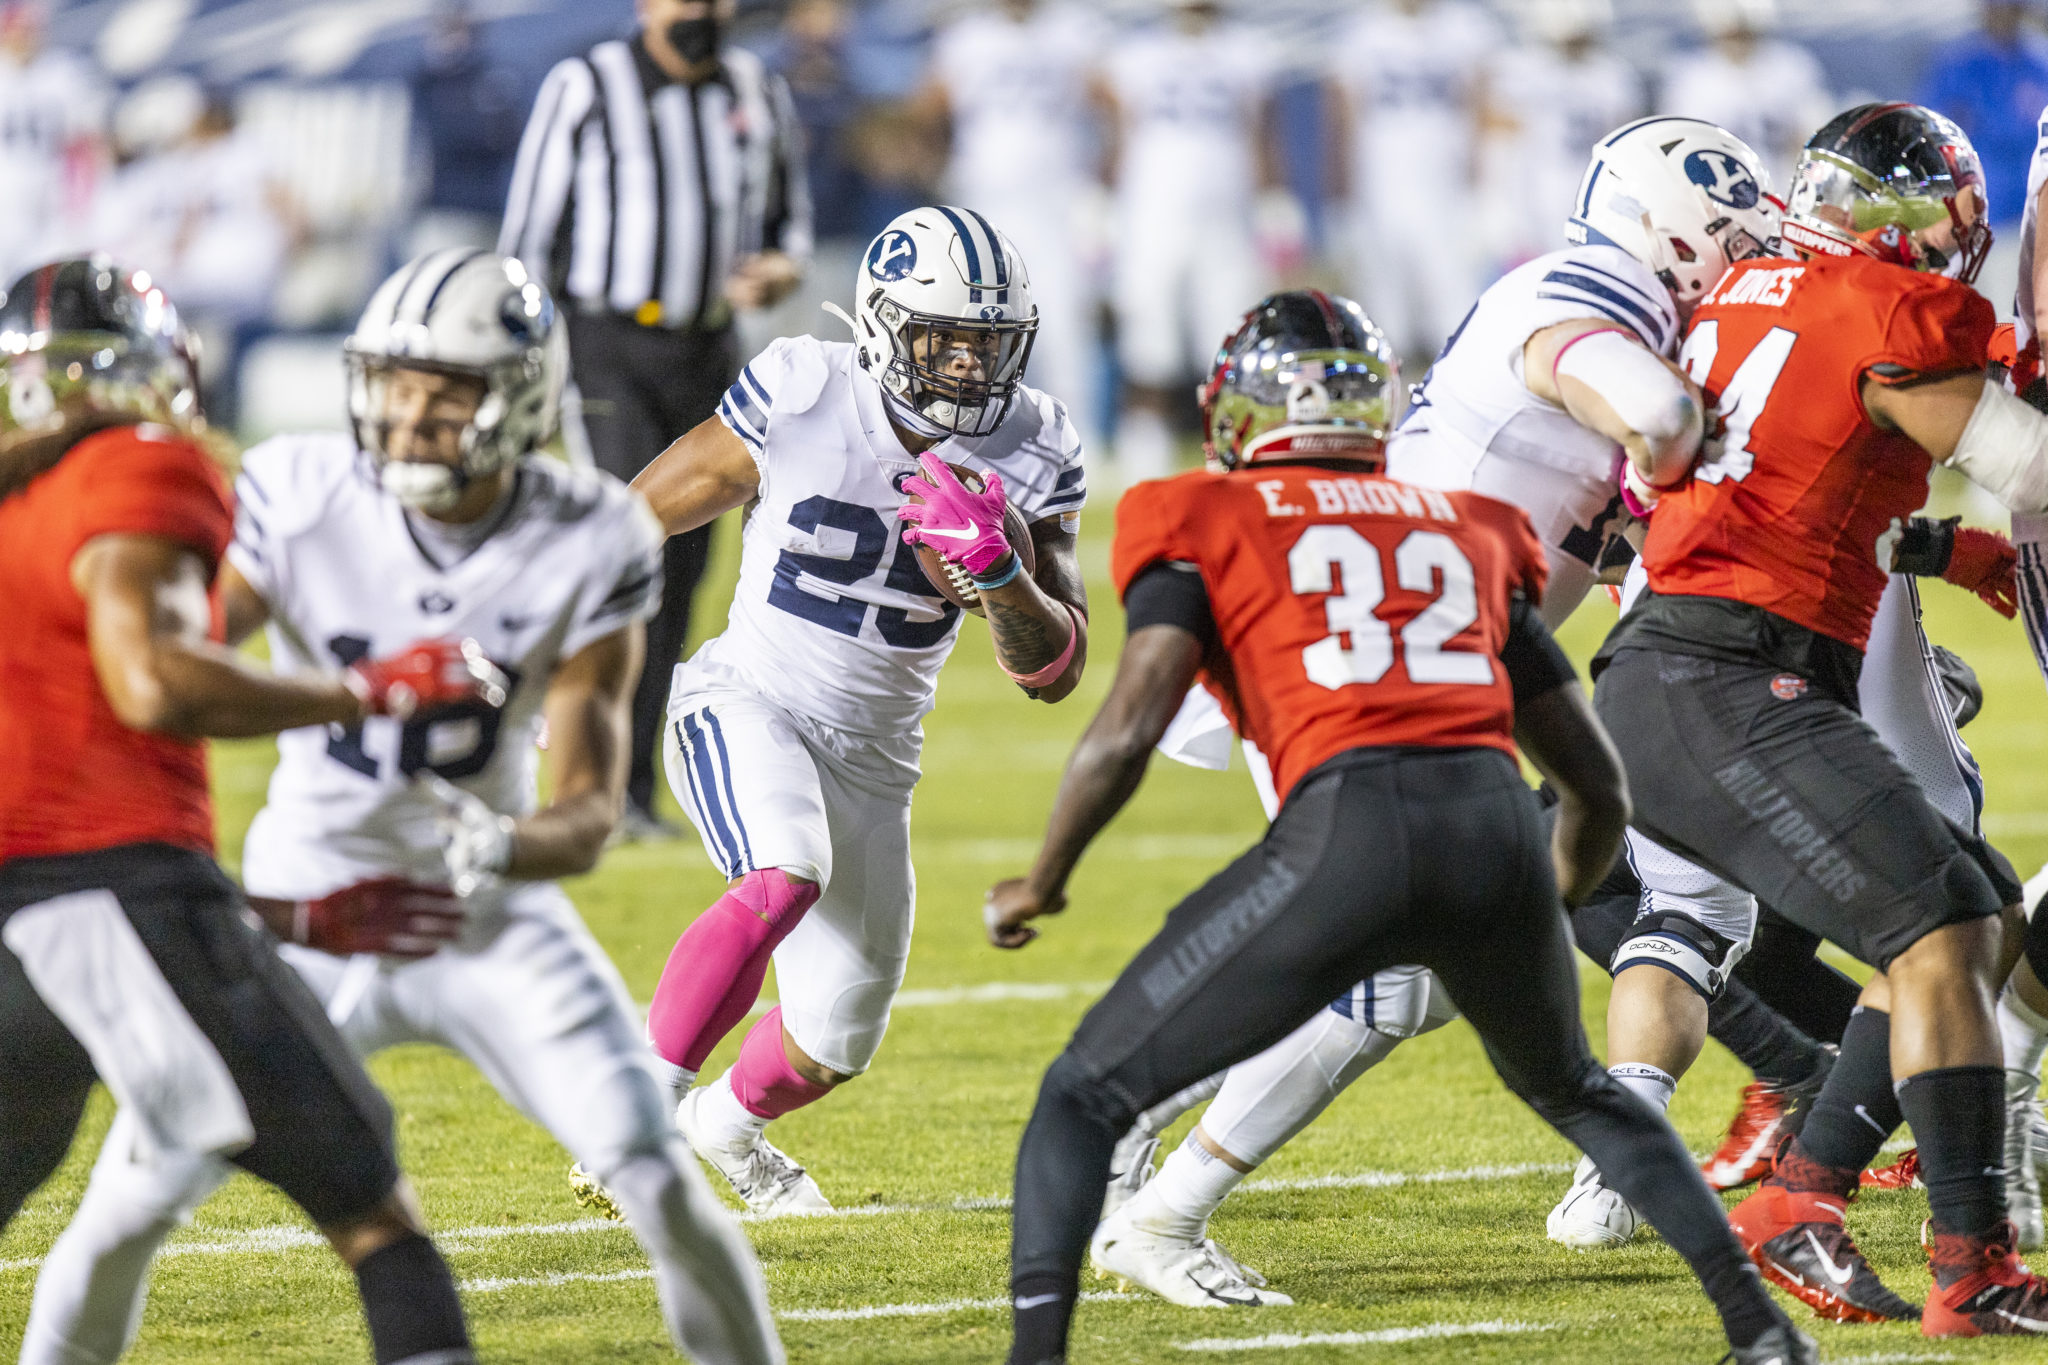 BYU Football travels to Boise State for first ranked matchup of season